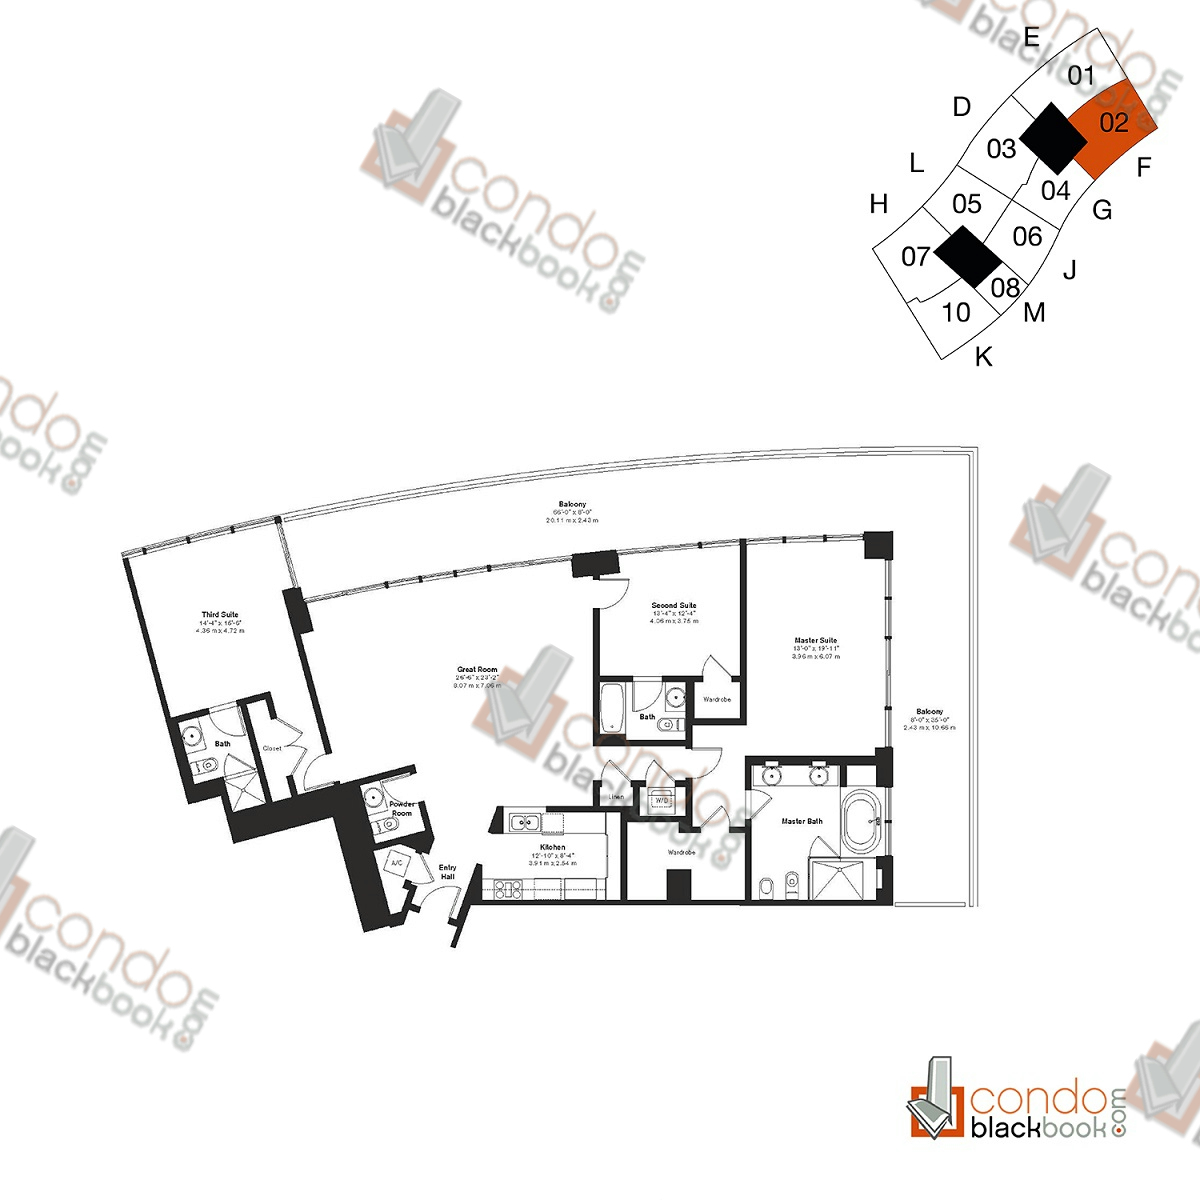 Floor plan for ICON South Beach South Beach Miami Beach, model Residence F, line 02, 2/2.5 bedrooms, 1,933 sq ft